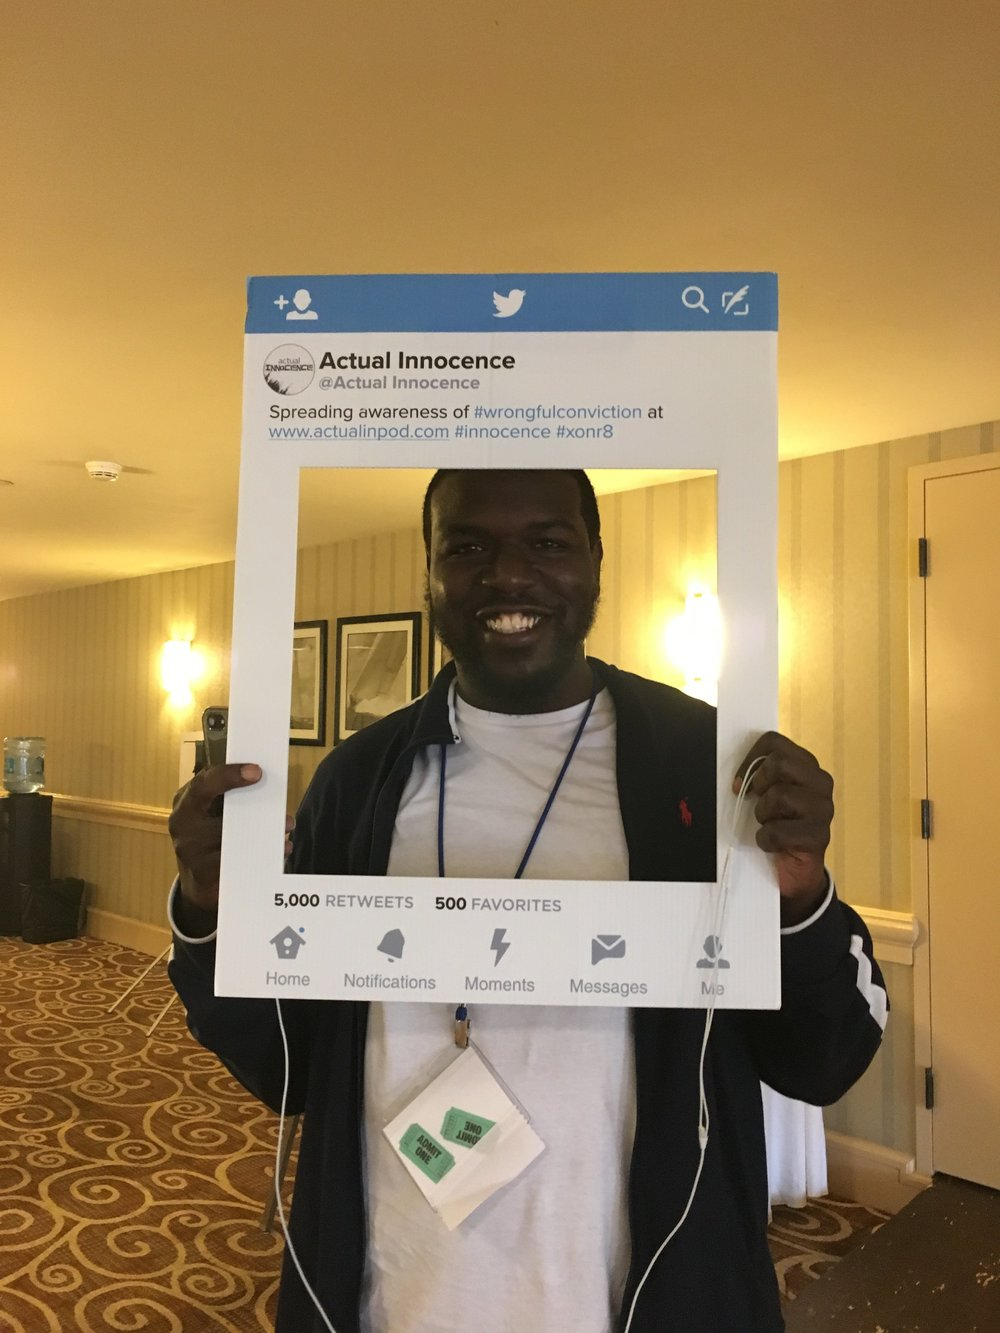 Donte Rollins had been out of prison for 2 months when he attended the 2017 Innocence Conference. He's mastered social media though - obviously.